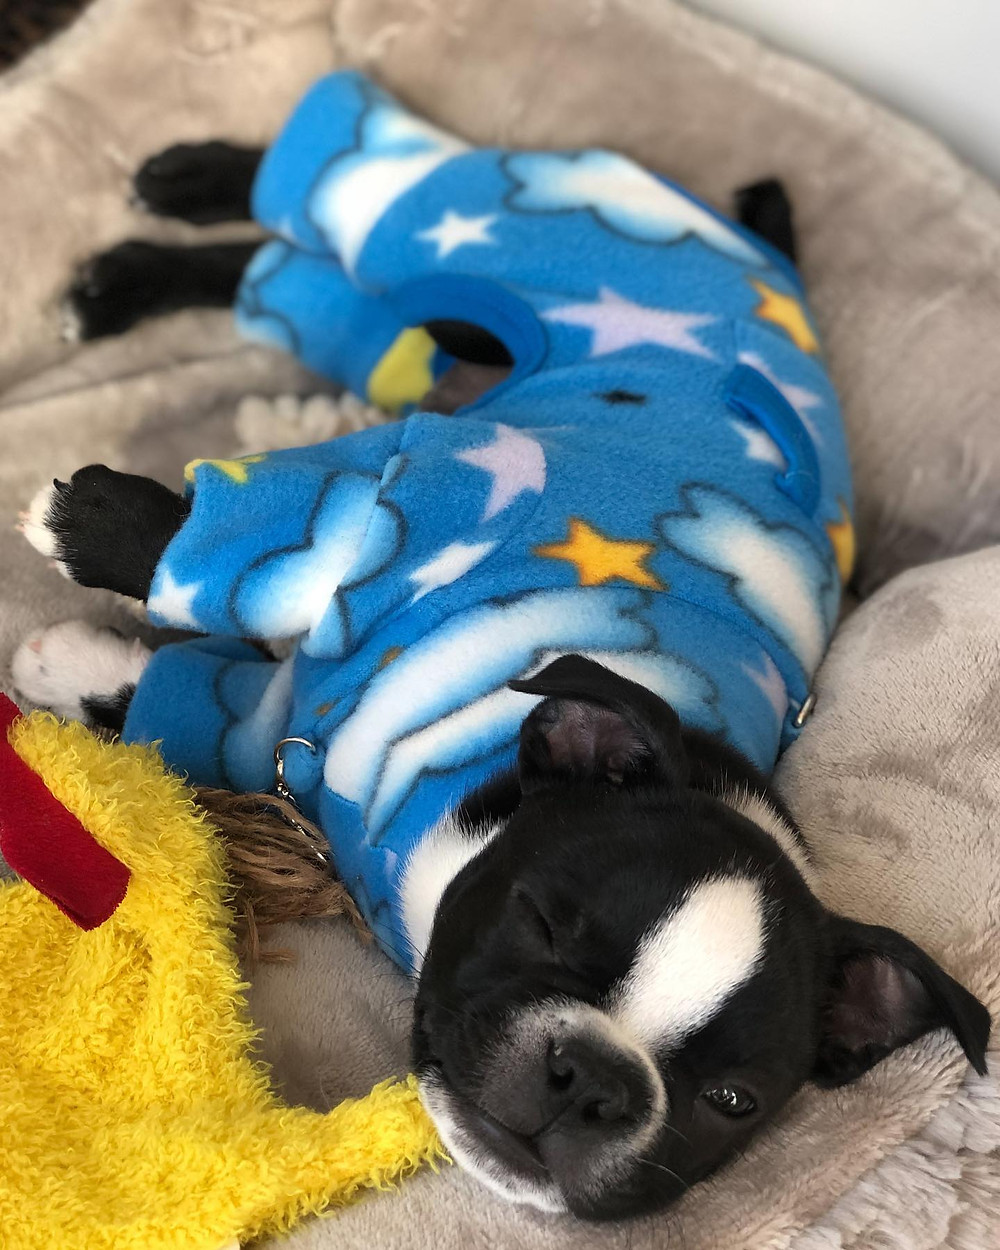 Kiki lays in a dog bed, wearing blue pajamas featuring white clouds and yellow stars. Kiki has one eye open looking at the camera.